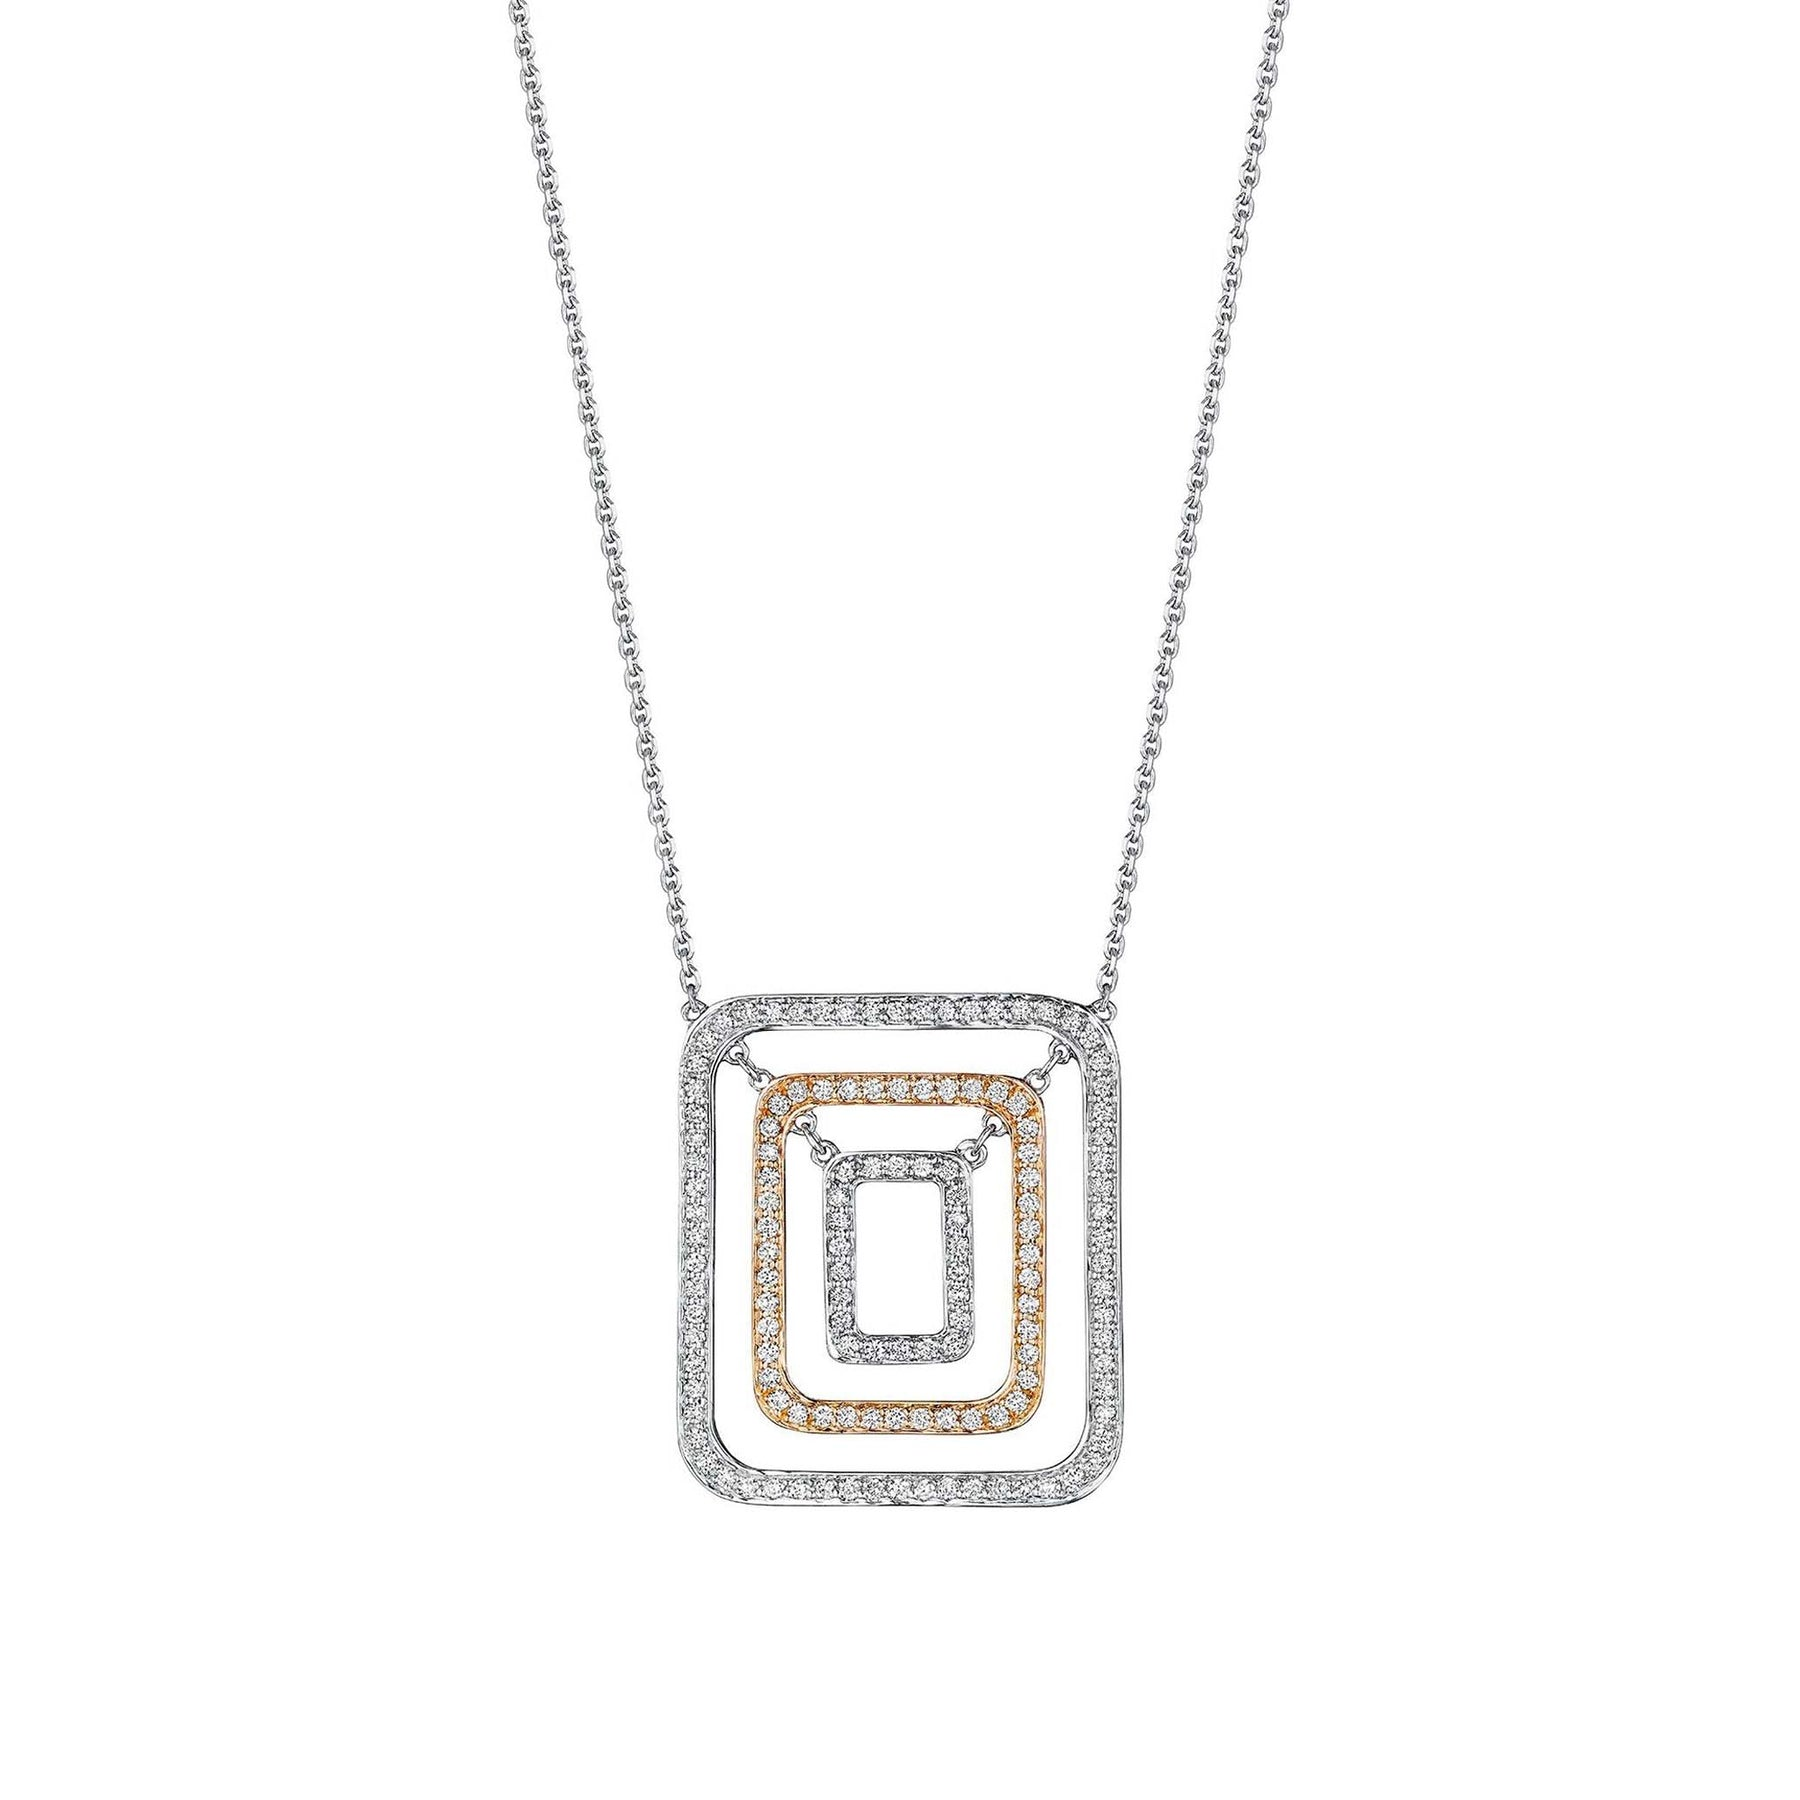 Mimi-So-Piece-Square-Swing-Necklace_18k White/Rose Gold